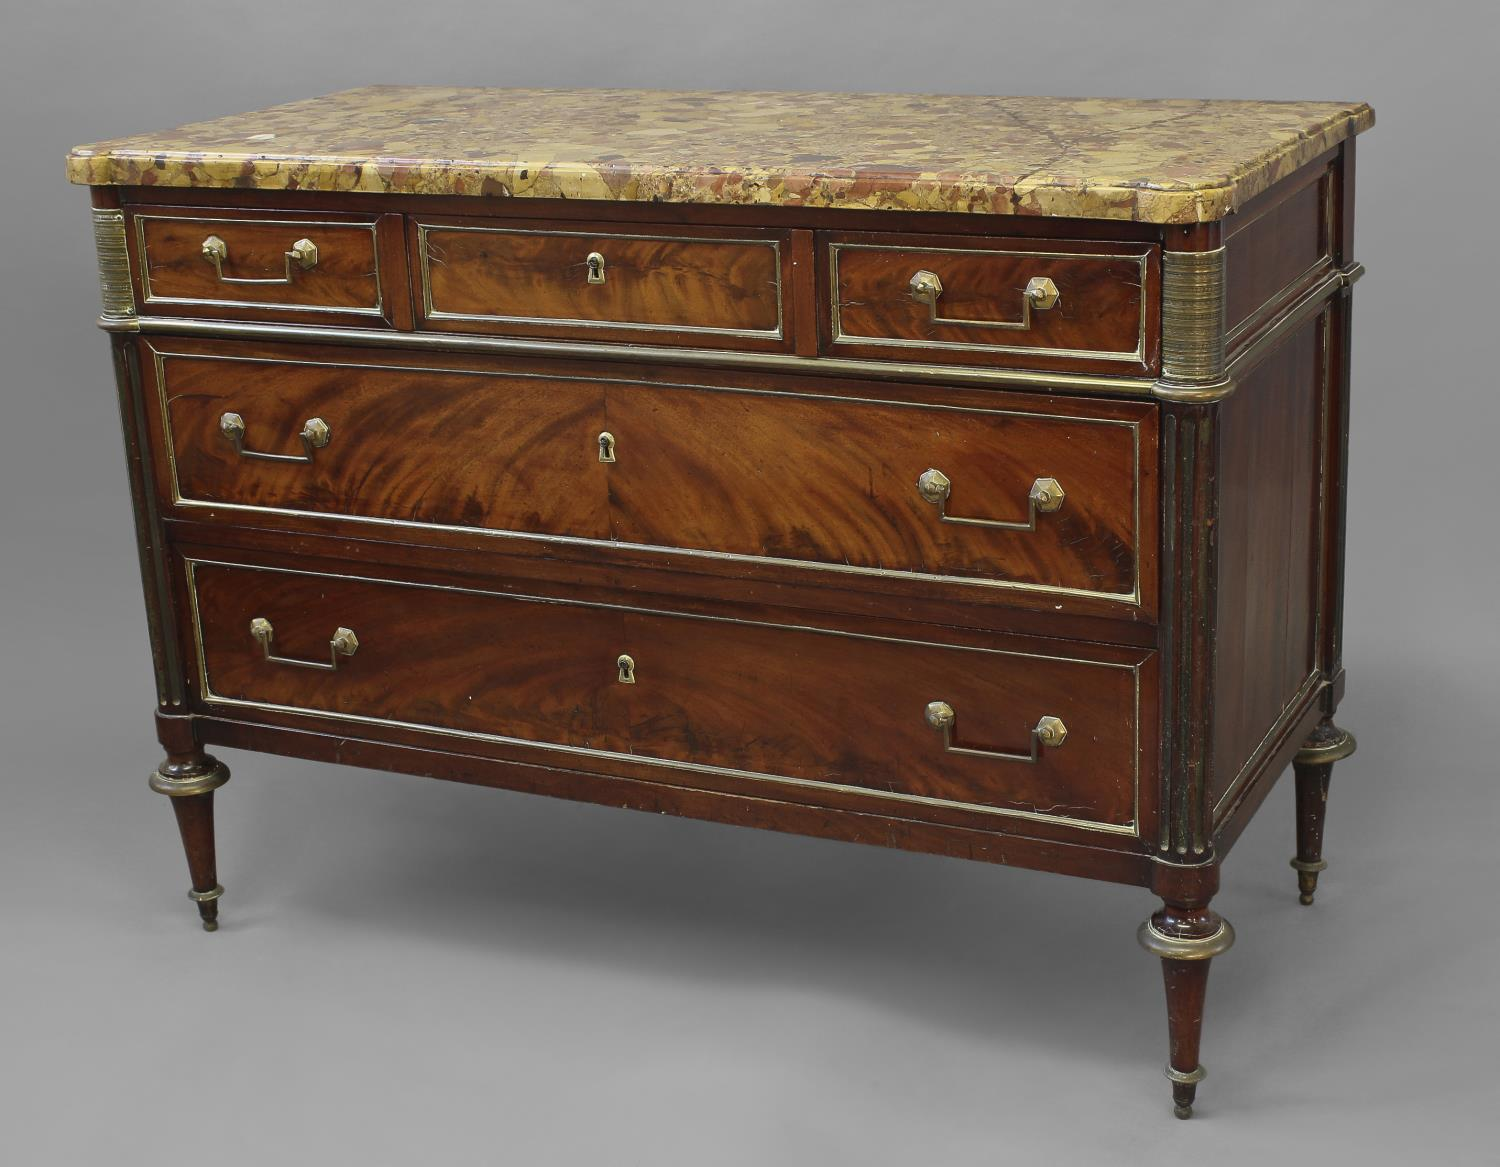 A LOUIS XVI MAHOGANY AND BRASS MOUNTED CHEST OF DRAWERS, with a fine variegated marble top with